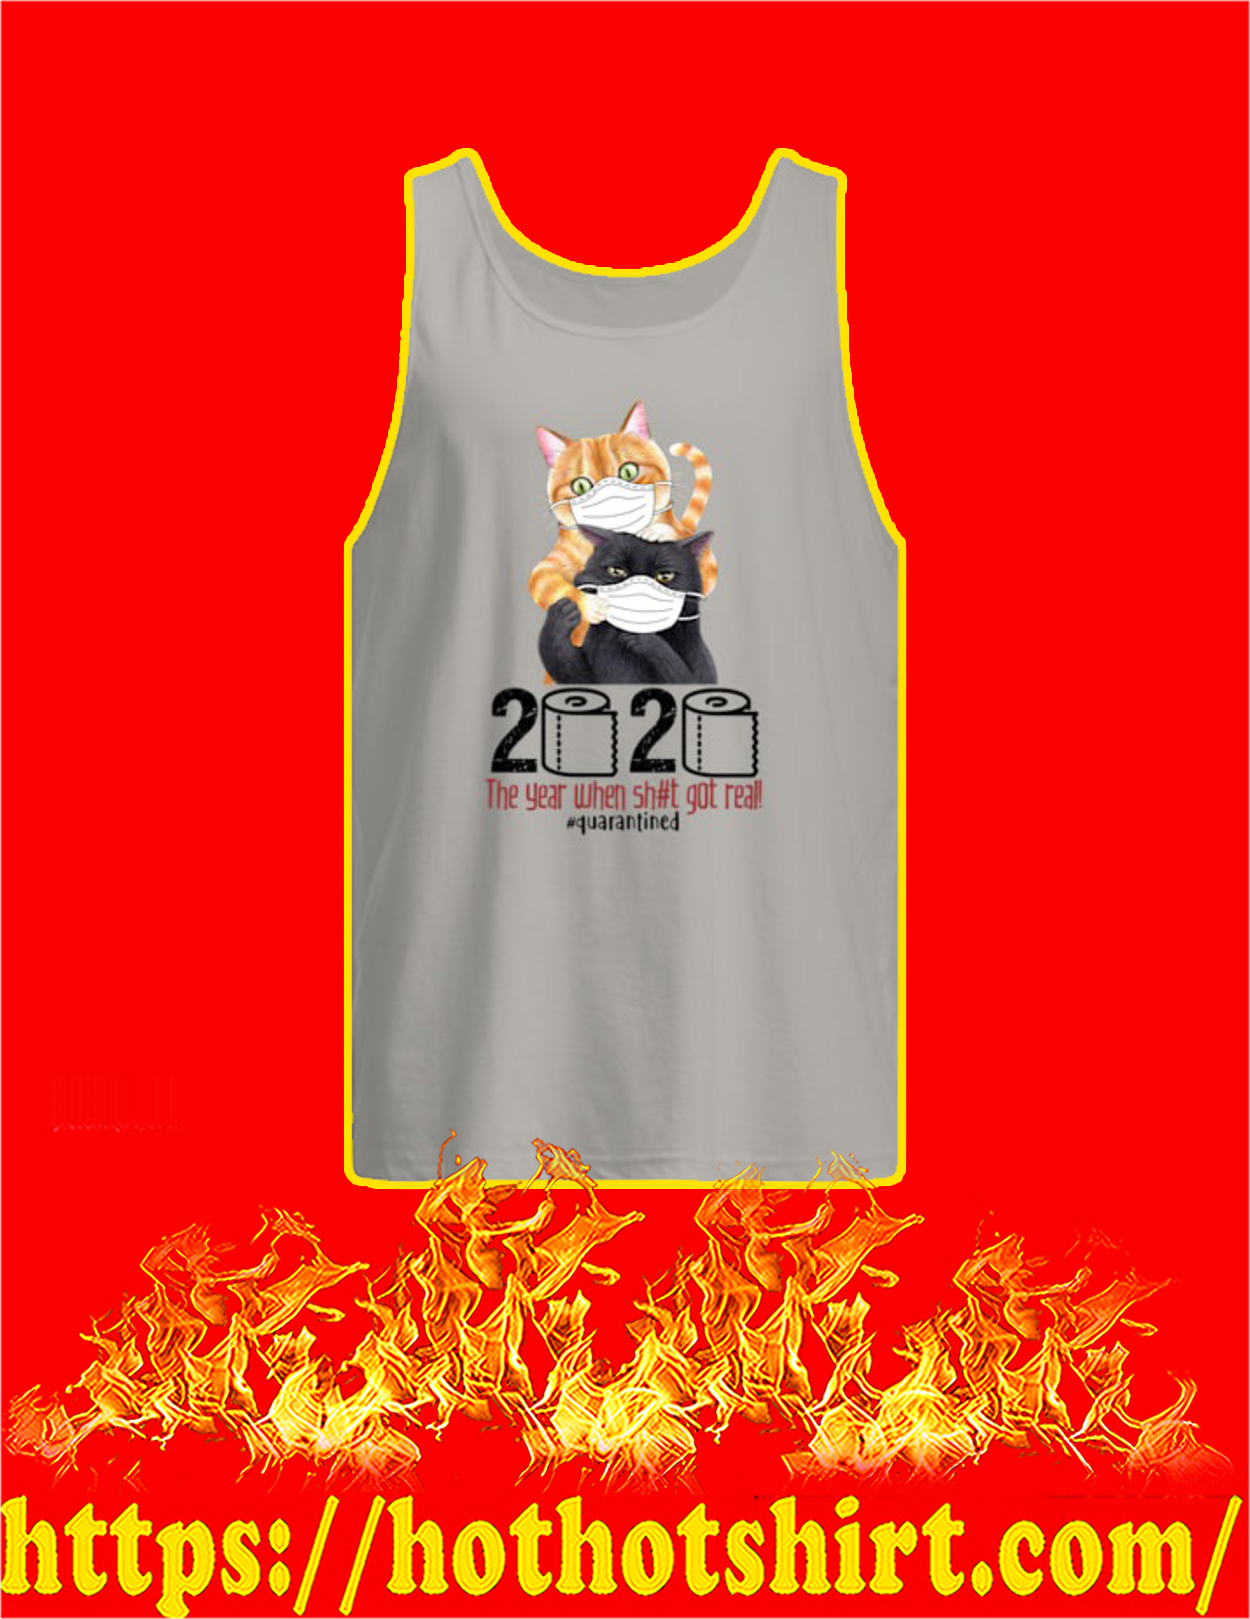 Cat 2020 the year when shit got real quarantined tank top